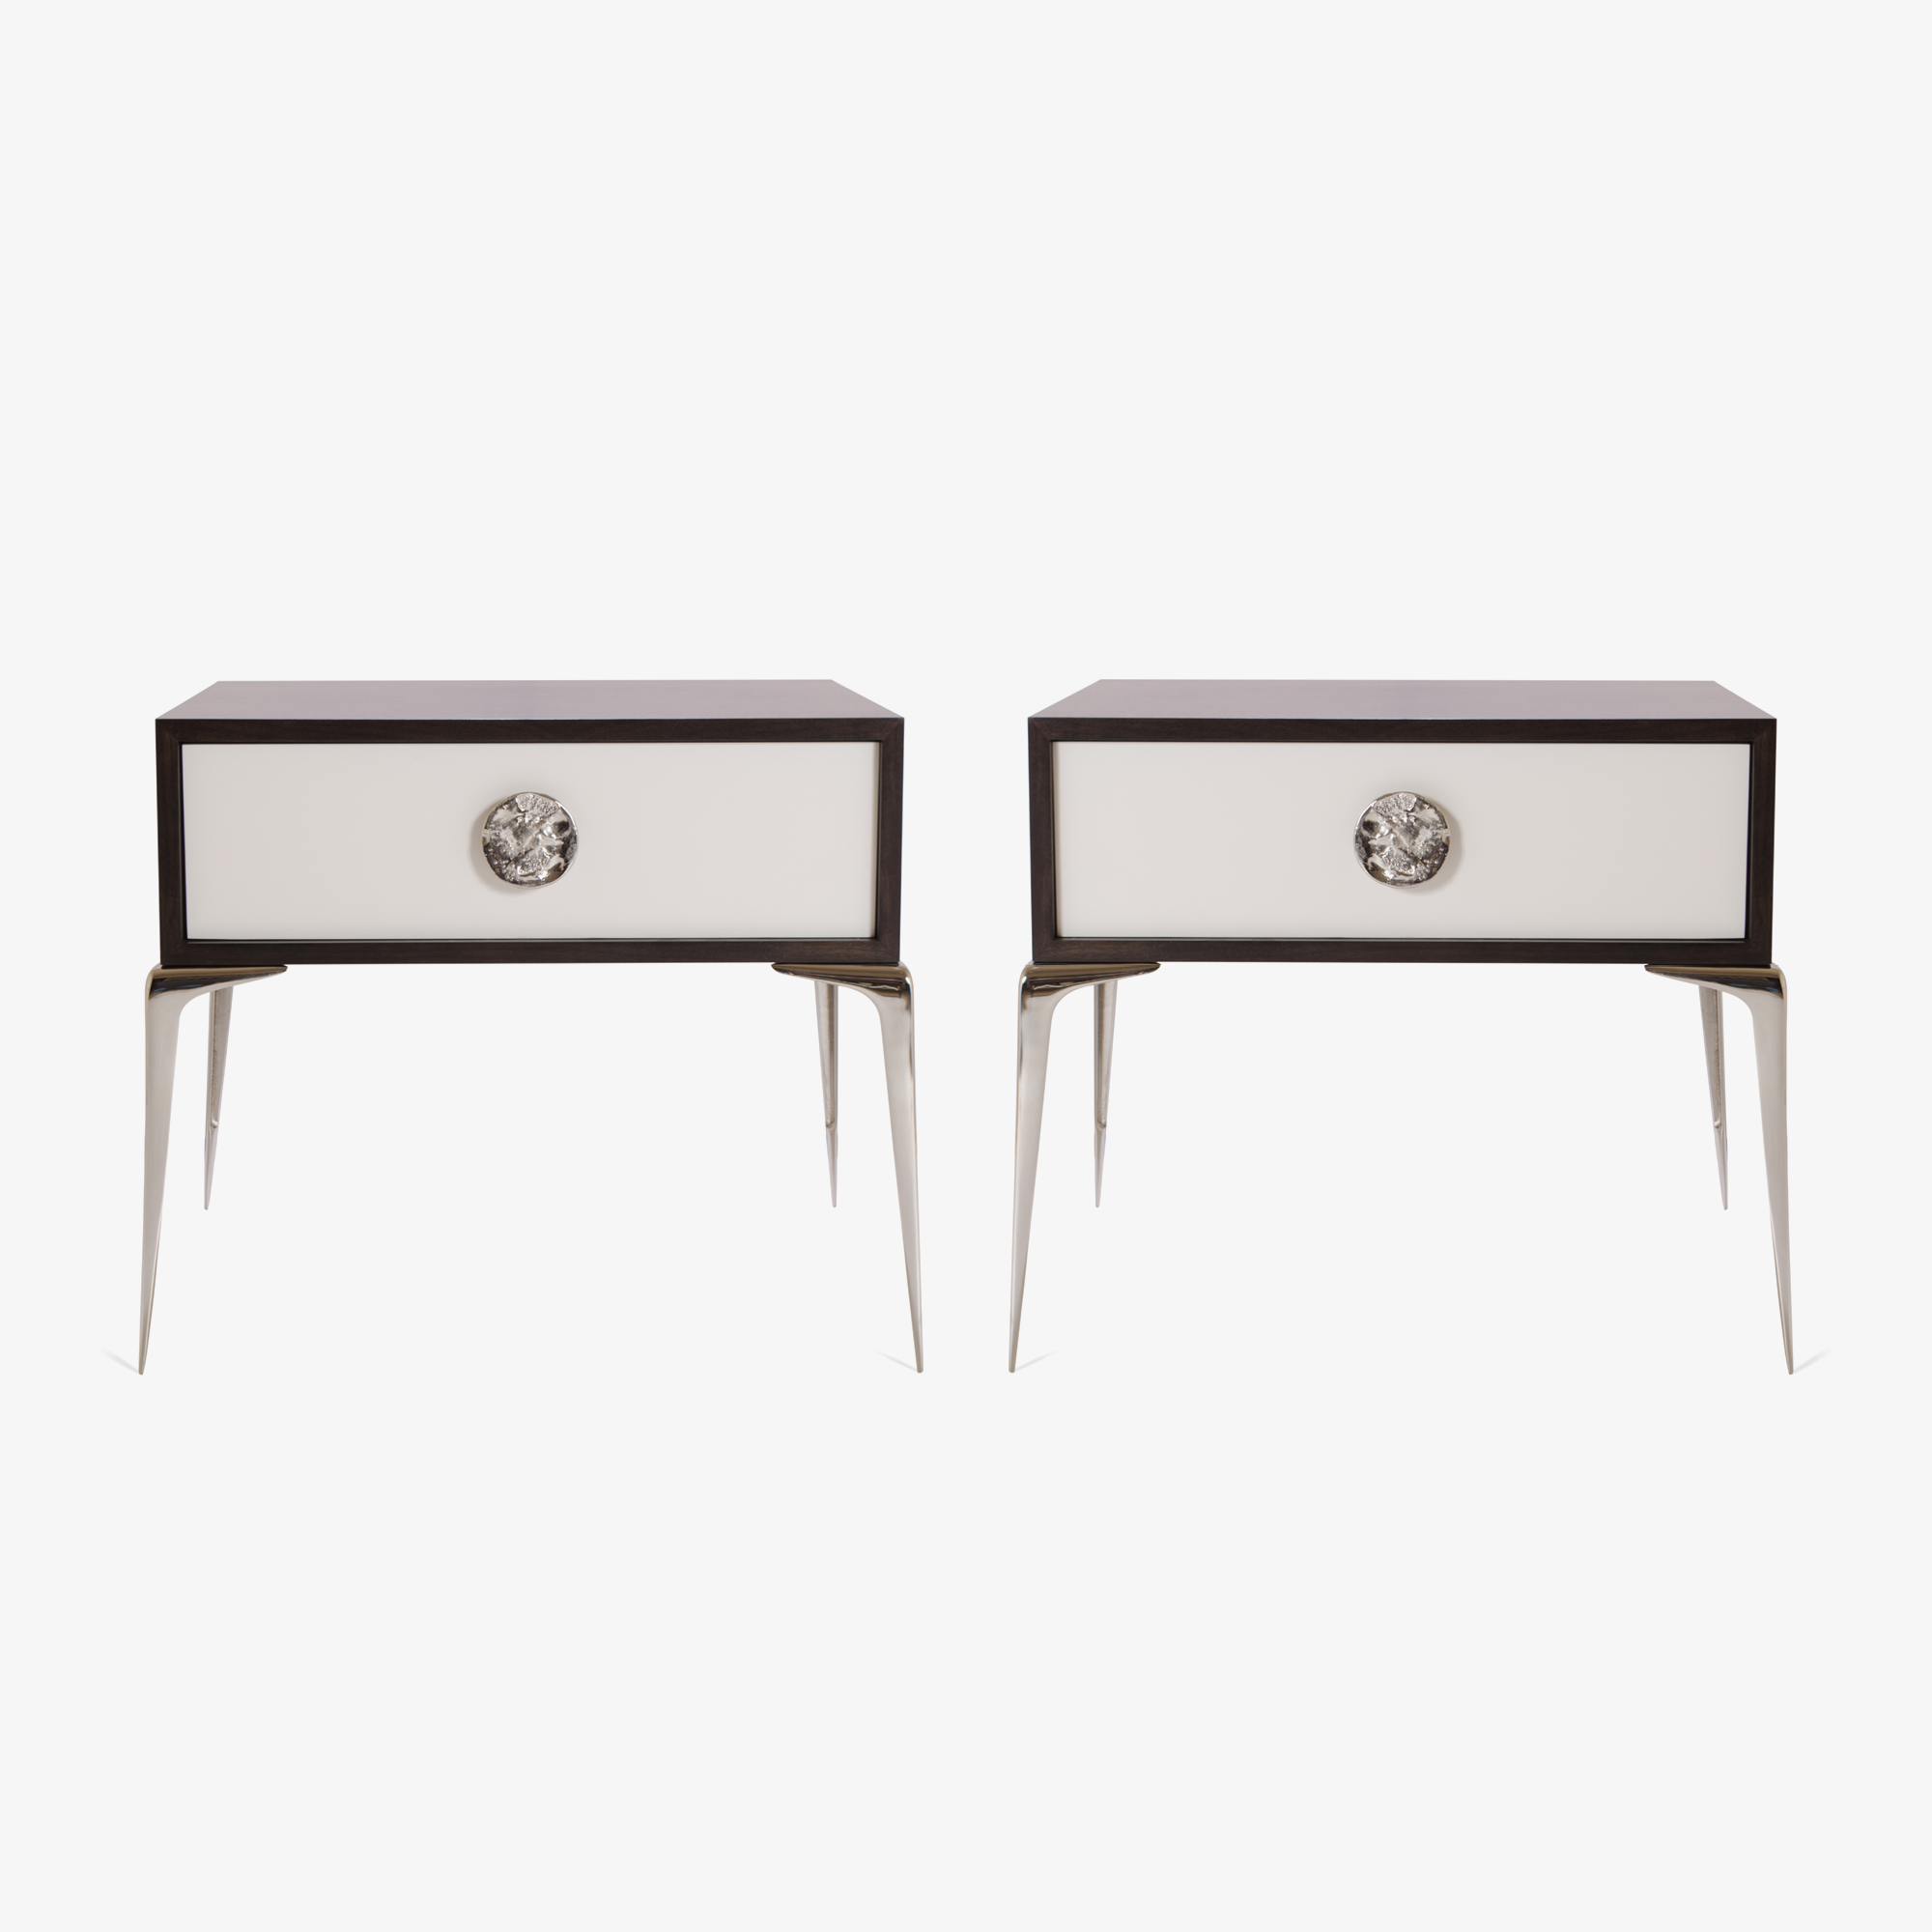 Montage Colette Nickel Nightstands in Walnut